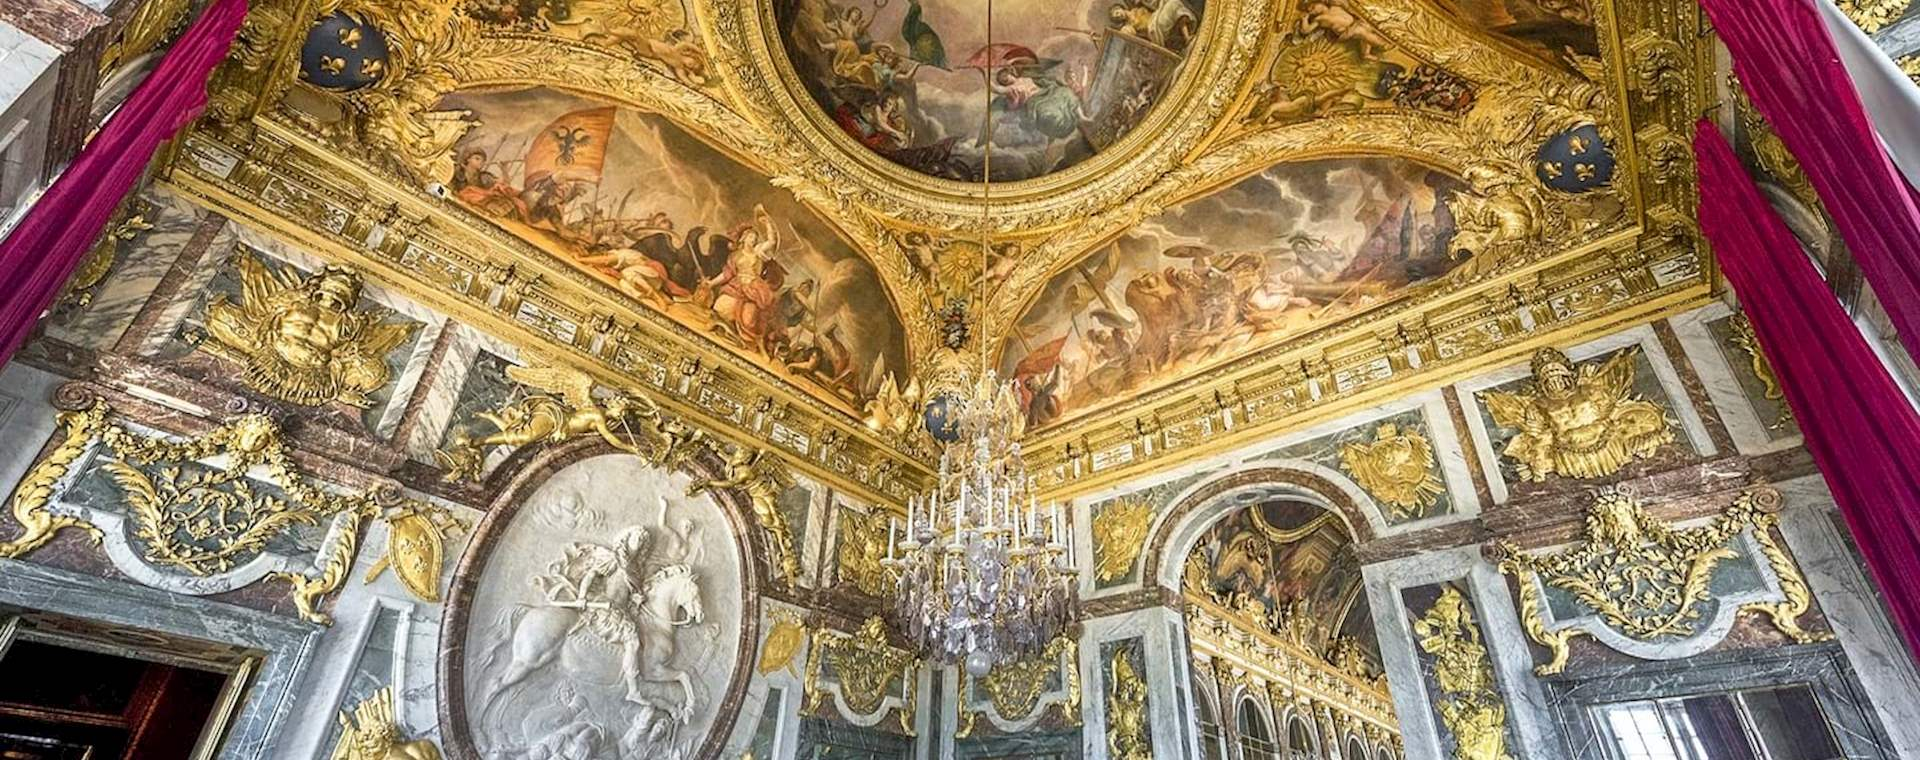 Half Day Versailles Palace & Gardens Tour with Kings Private Apartments from Paris